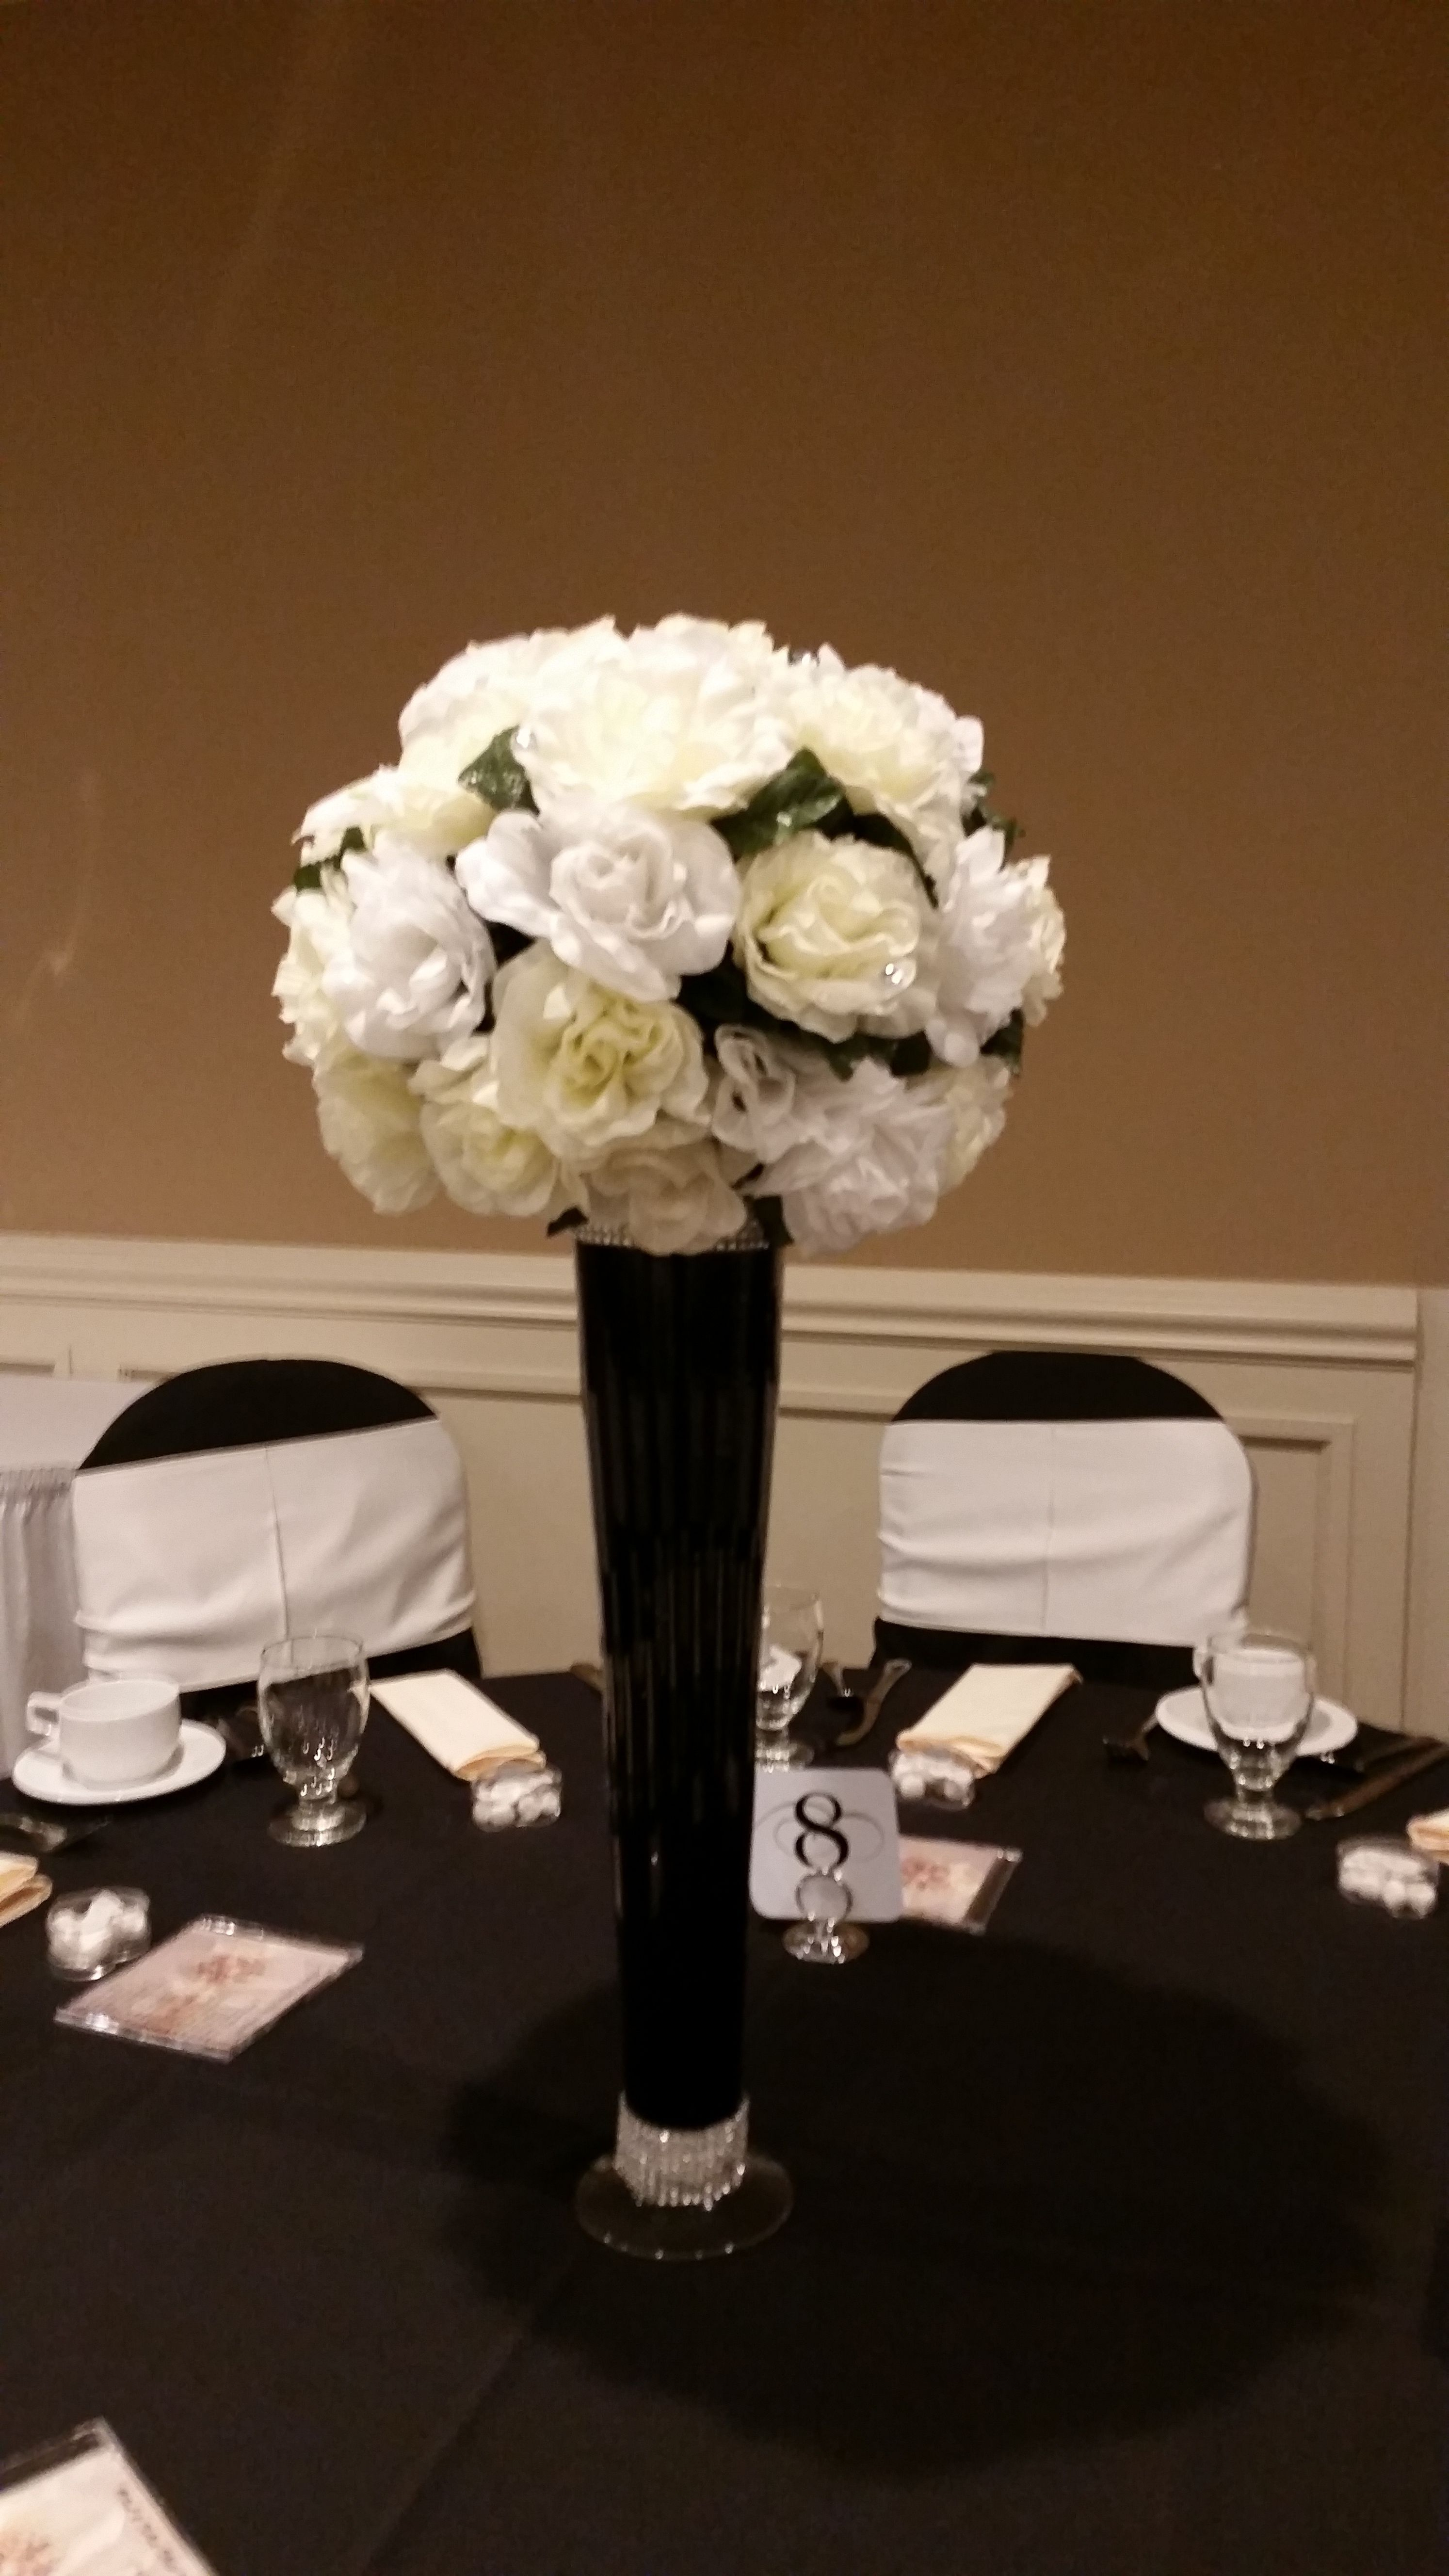 Black white and ivory silk flowers with tall black vase with black white and ivory silk flowers with tall black vase with pearls around top and reviewsmspy